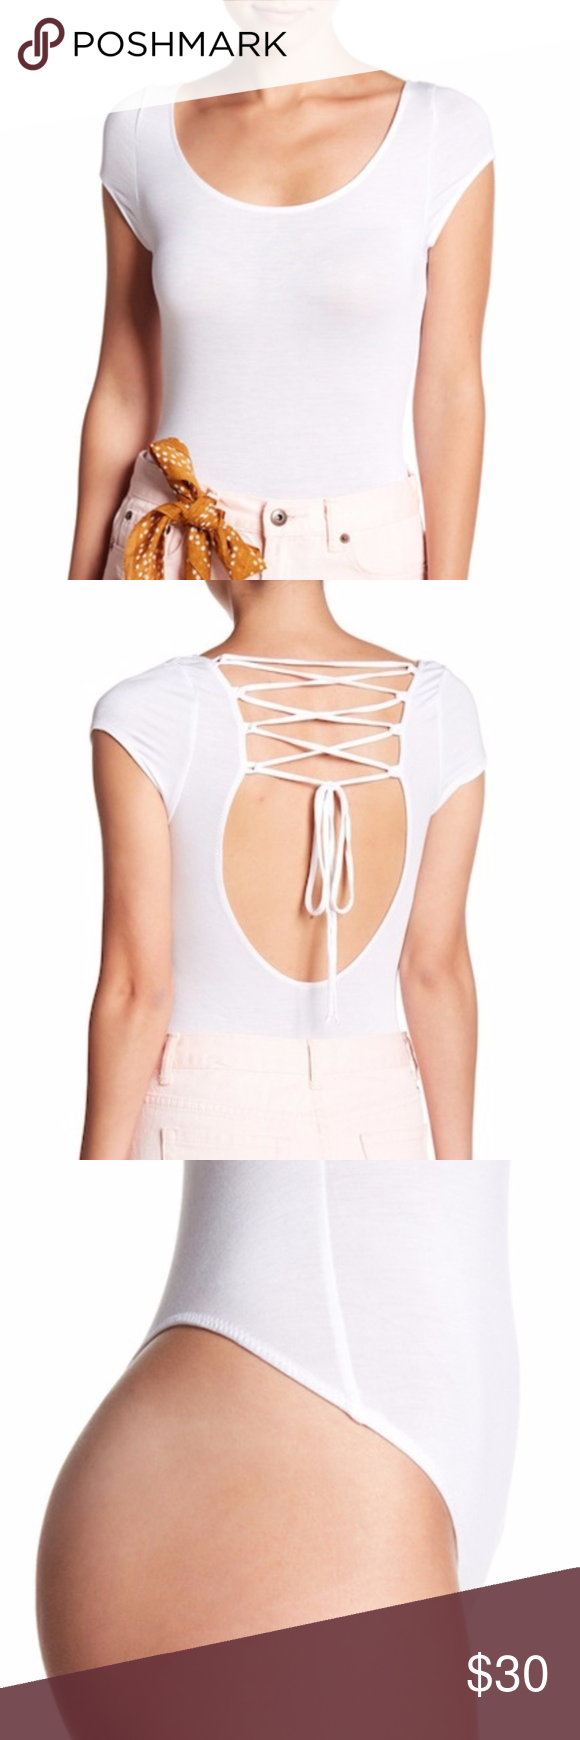 Lace up back bodysuit  FREE PEOPLE All About the Back Bodysuit SMALL Ultra thin and